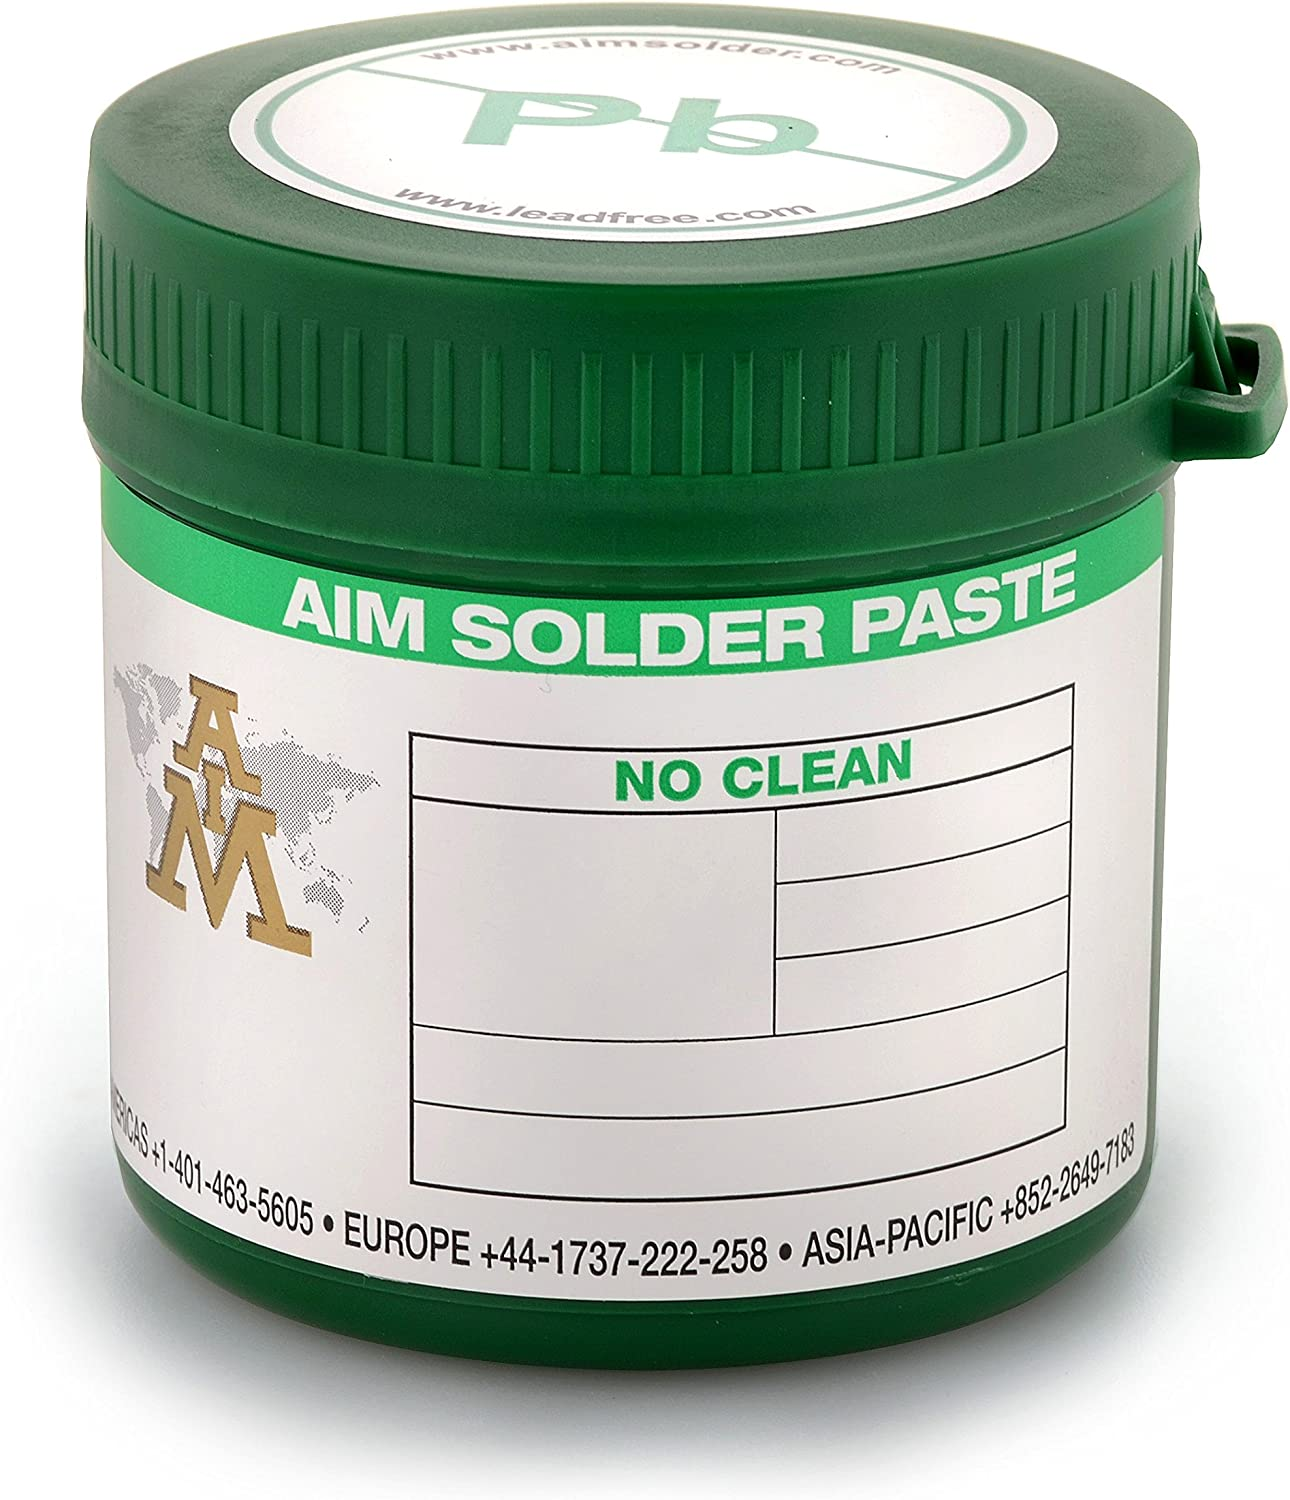 AIM M8 SAC305 Lead Financial sales sale Free No Paste Clean Solder Fort Worth Mall